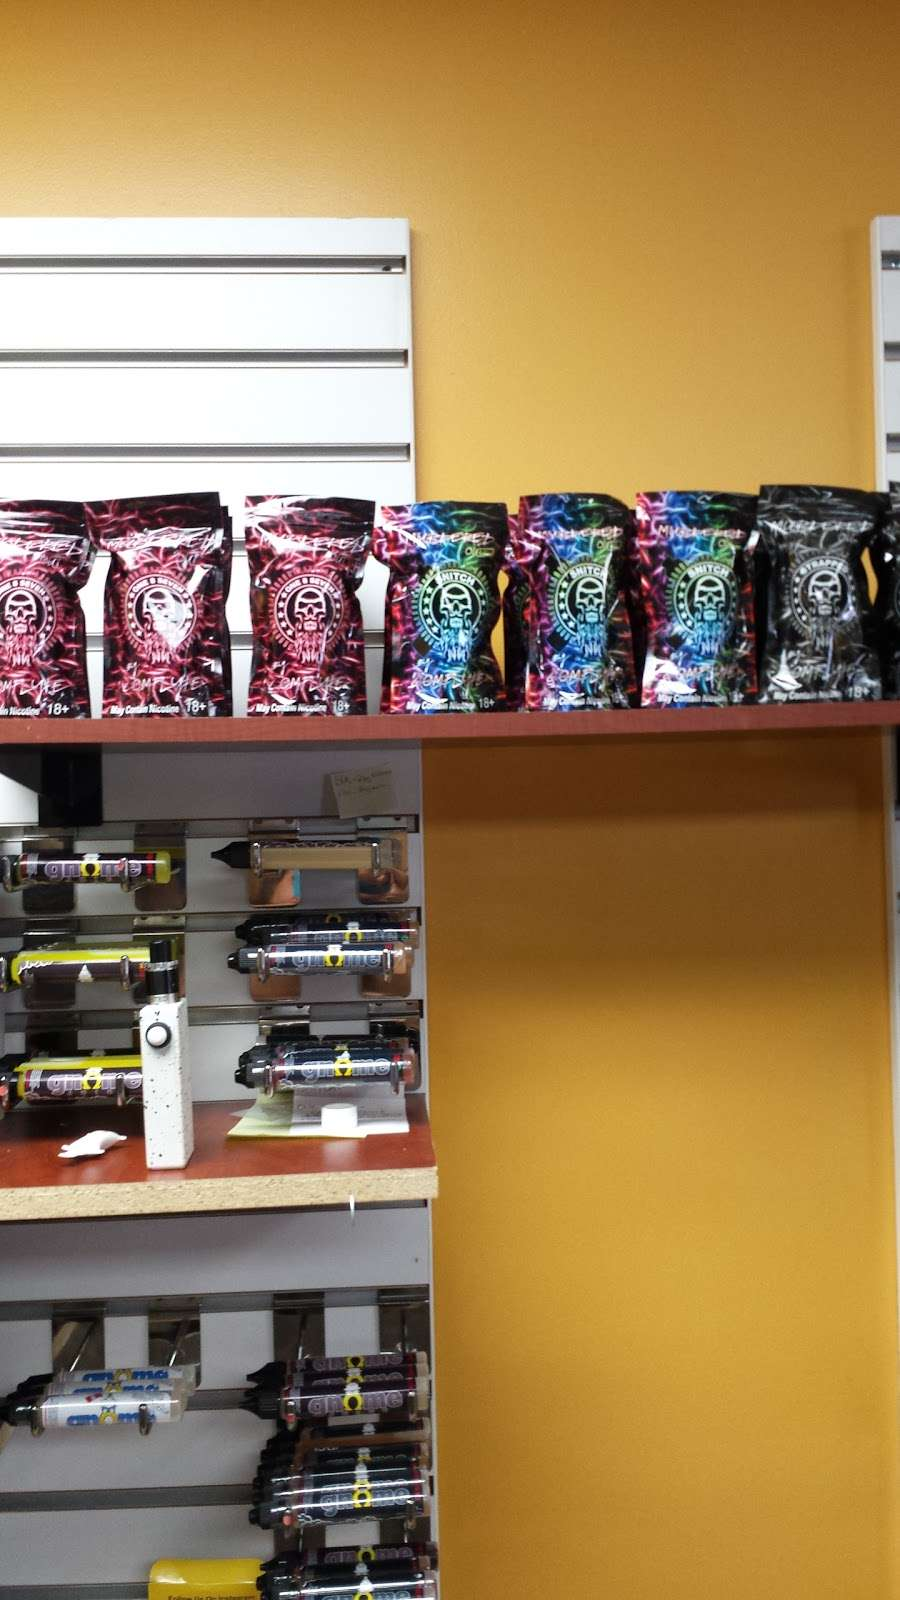 The Vape Spot - store  | Photo 9 of 10 | Address: 216 N Milwaukee St, Waterford, WI 53185, USA | Phone: (262) 332-7075